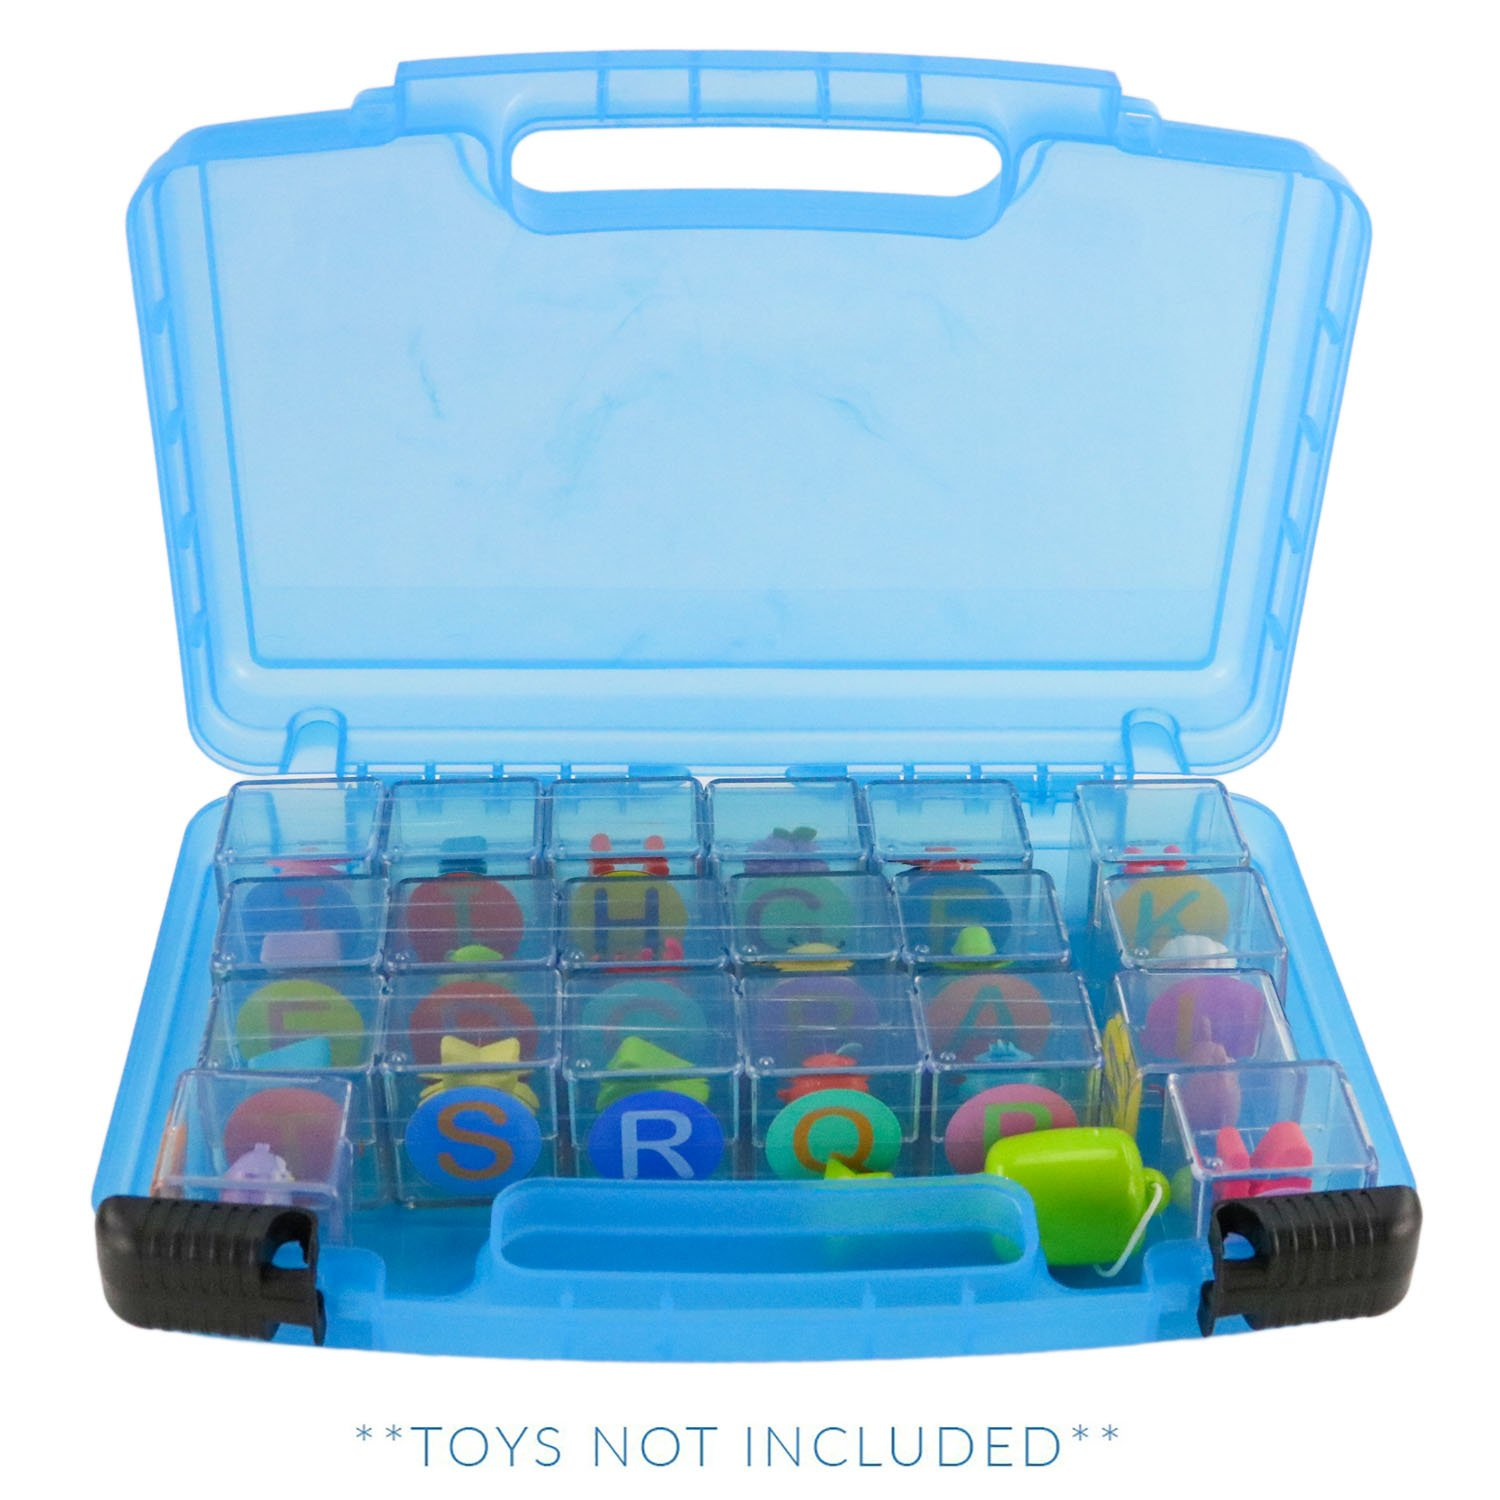 Life Made Better Storage Organizer Box Flip Flop Blocks Toys Accessories, Blue